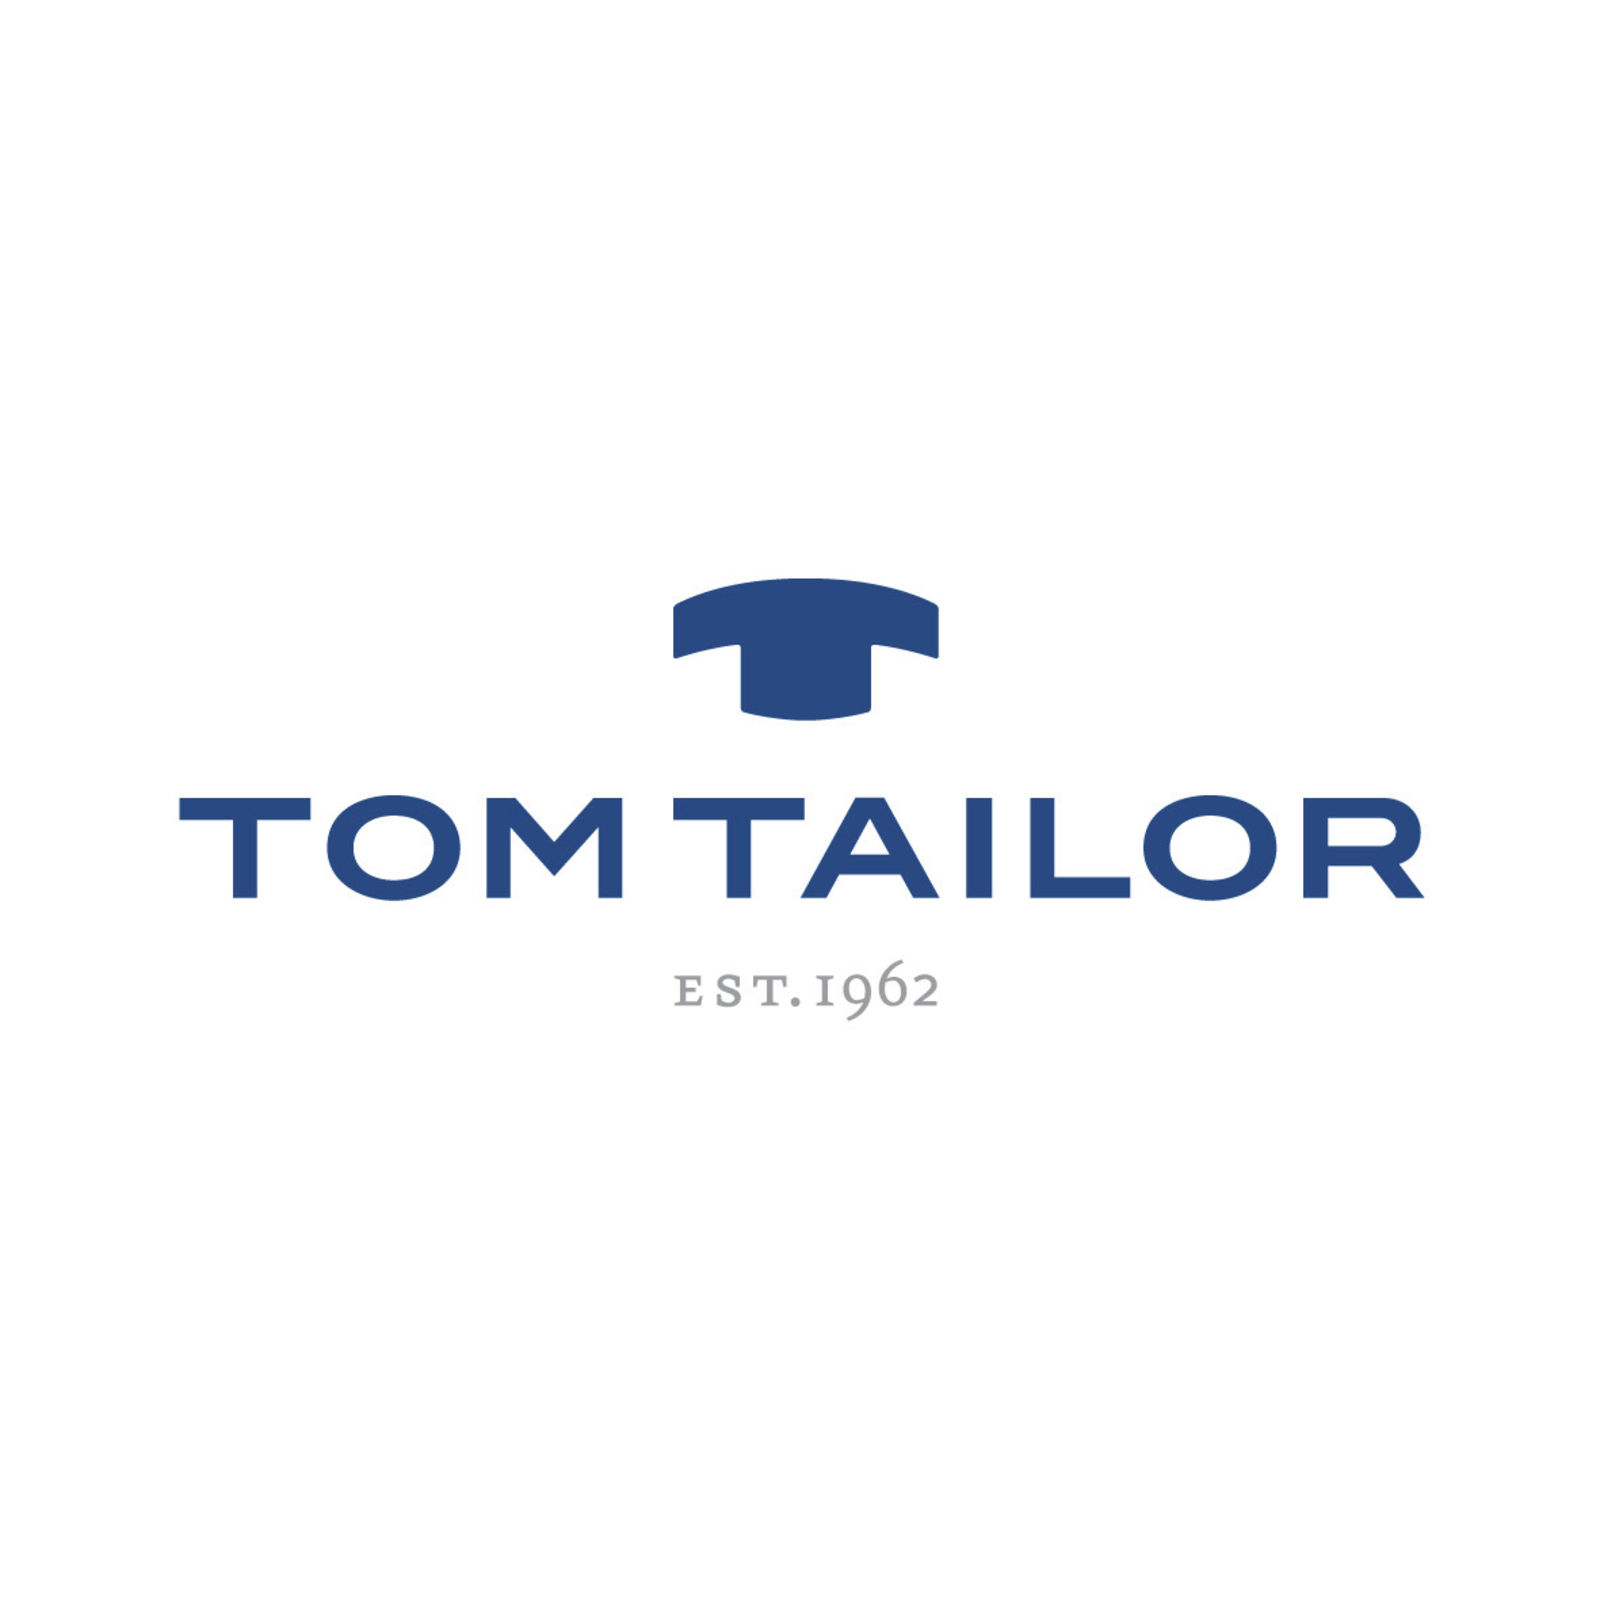 TOM TAILOR (Bild 1)